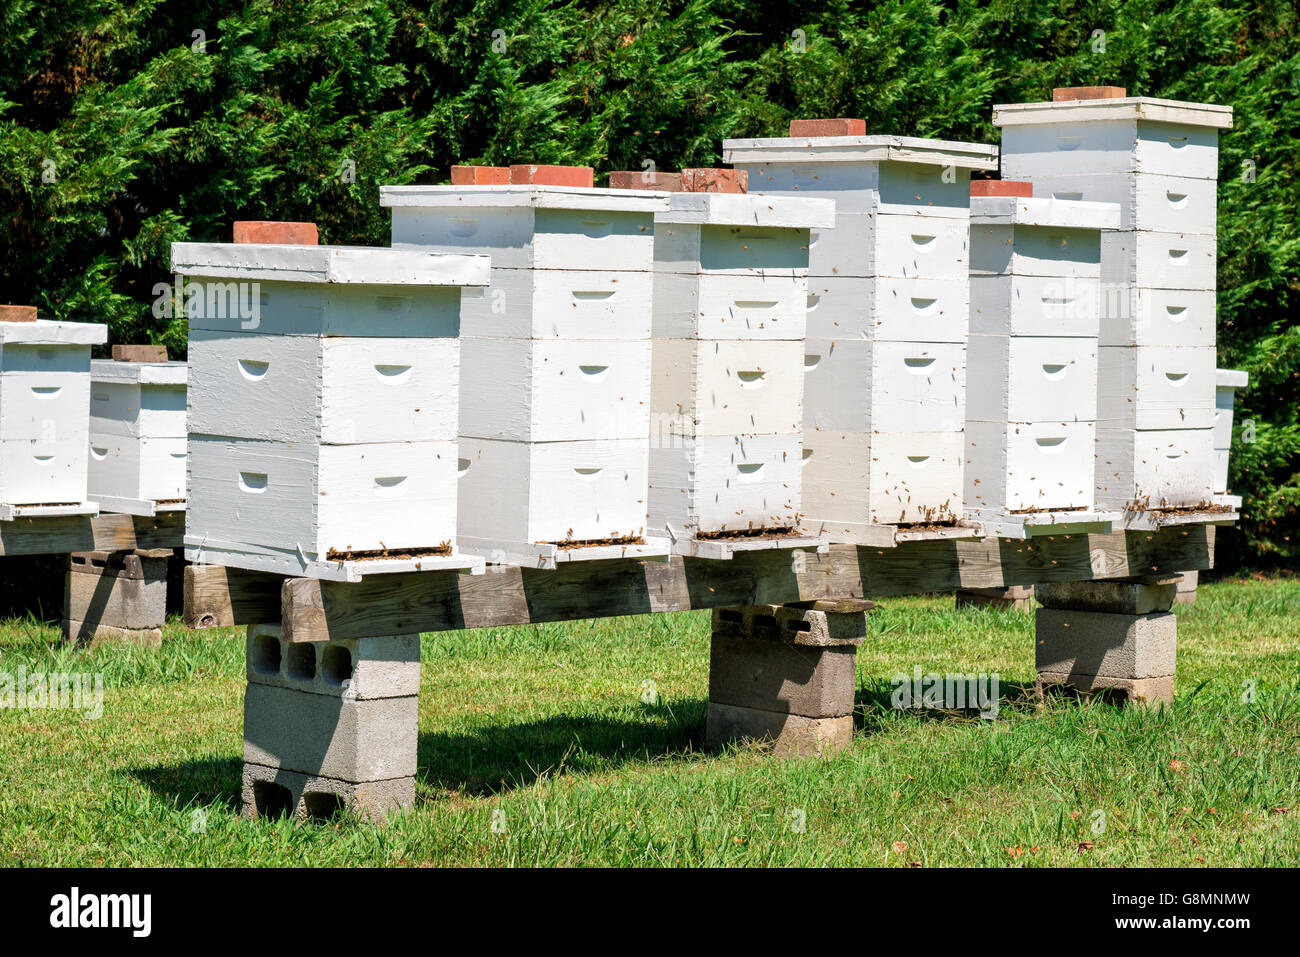 Many beehives in a row full of bees stock photo 108635545 for Hive container homes